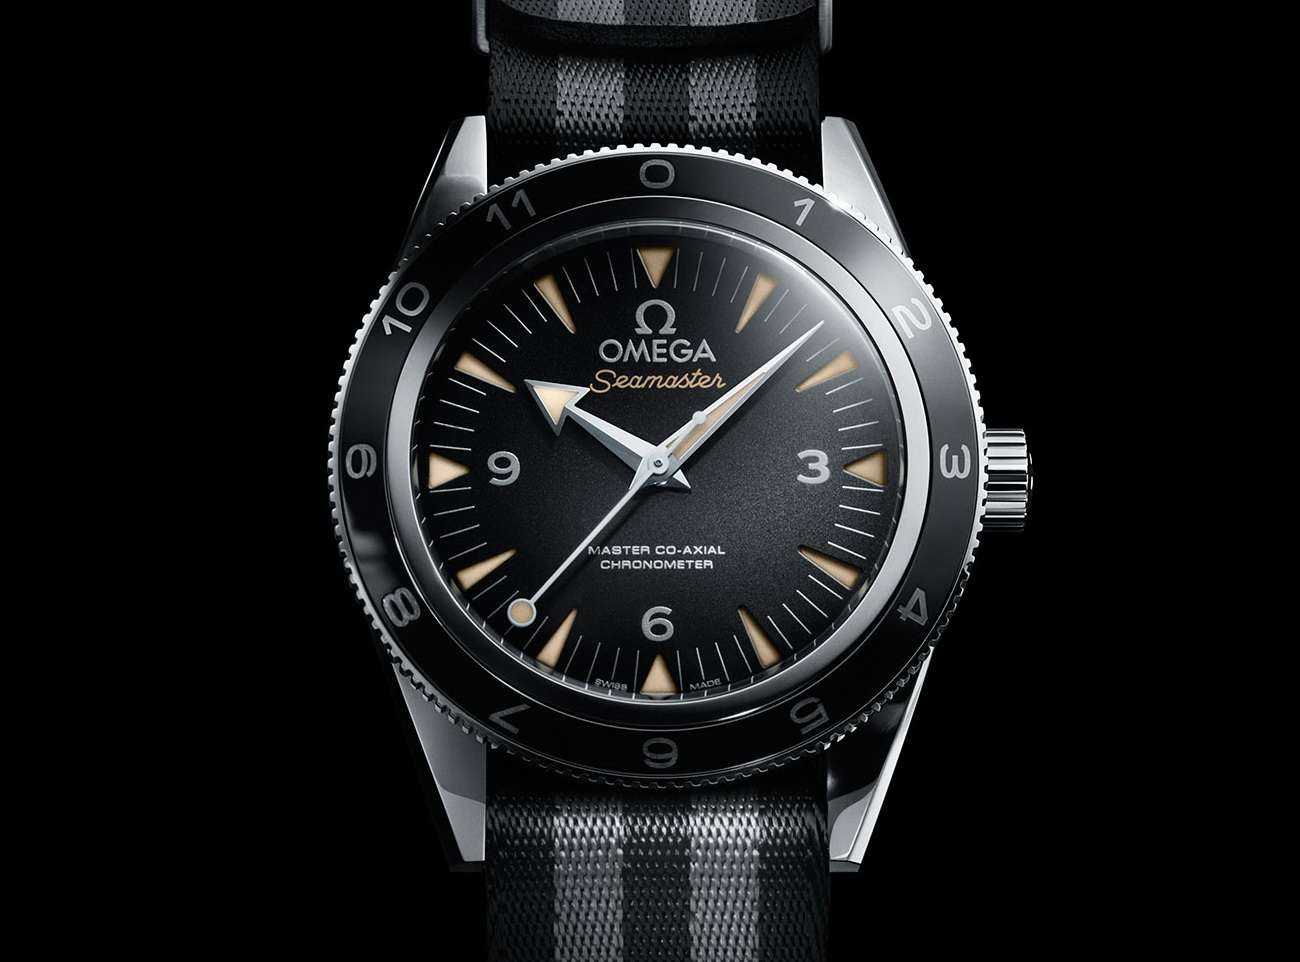 Omega-Seamaster-300-SPECTRE-James-Bond-3